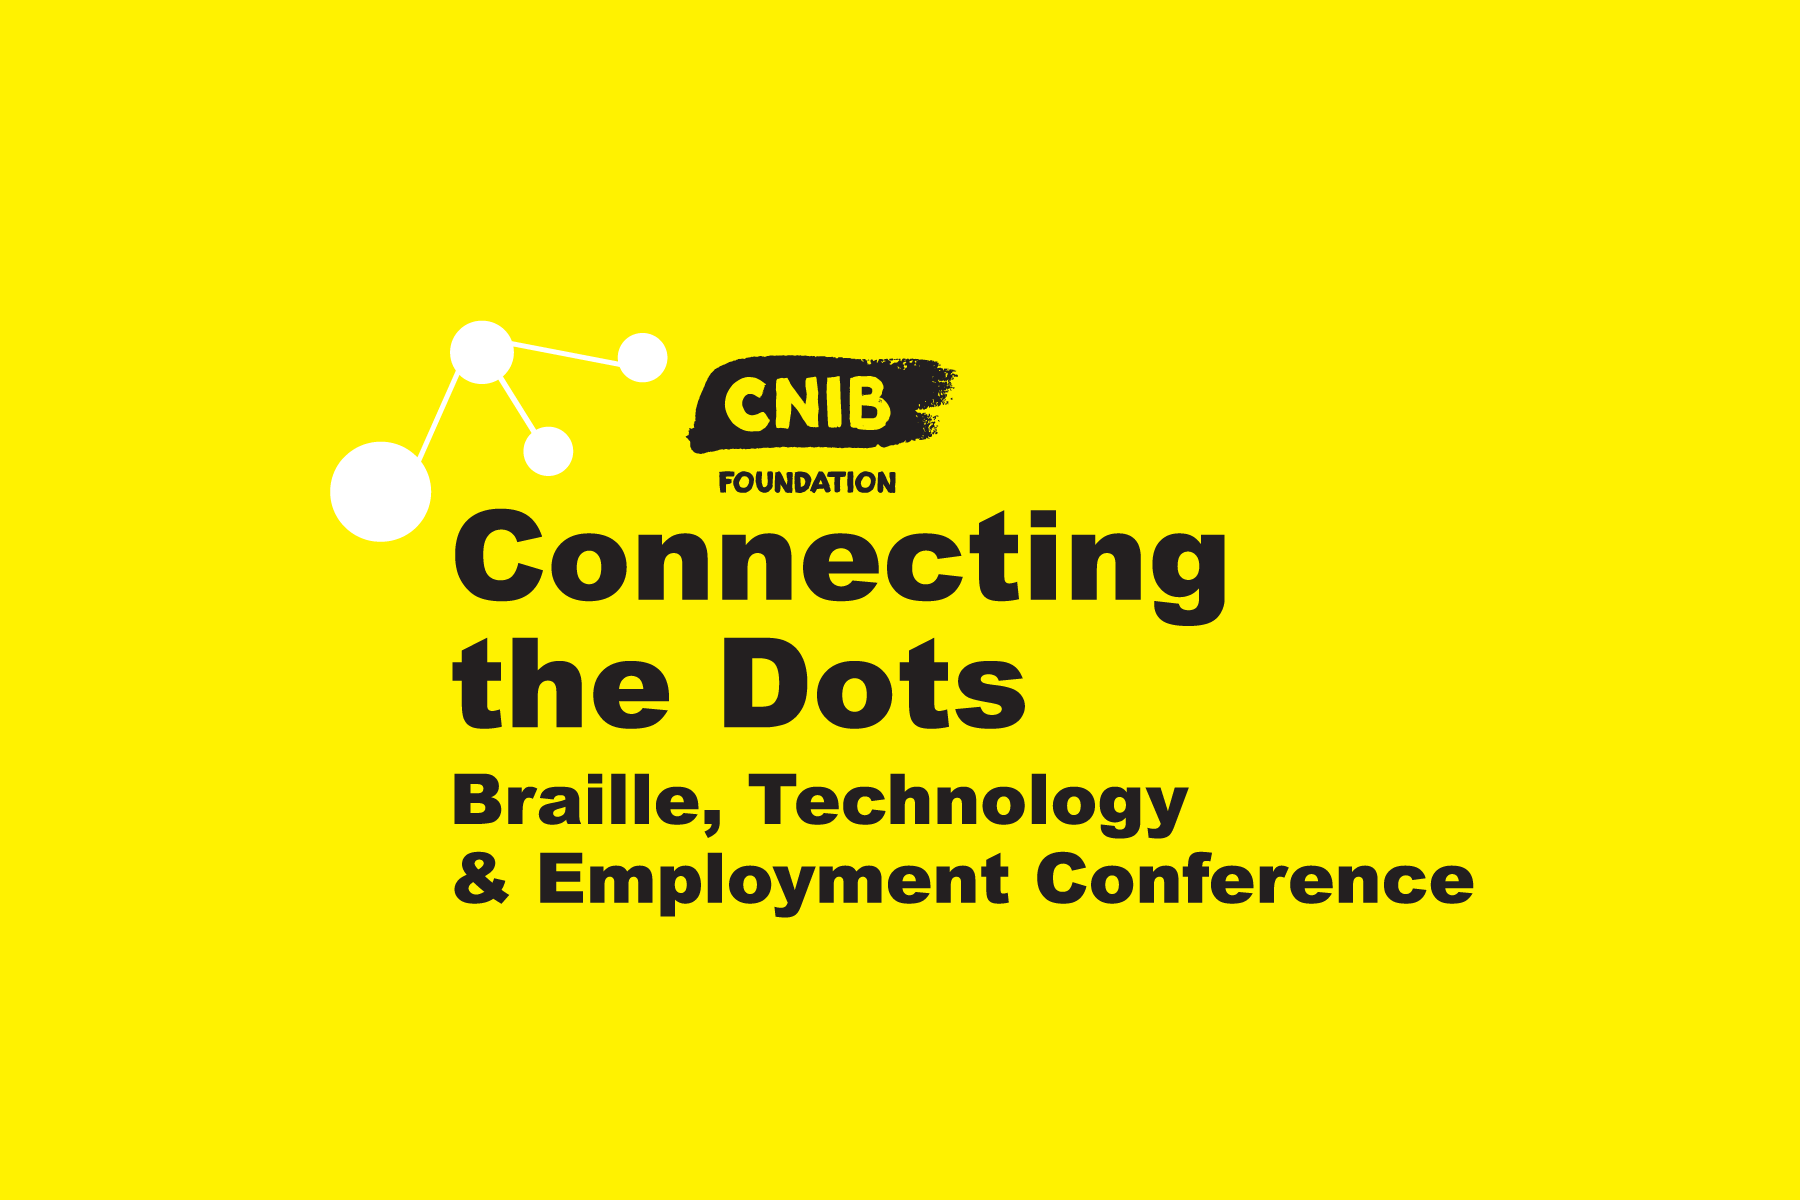 Connecting the Dots logo. Text: CNIB Foundation Connecting the Dots. Braille, Technology and Employment Conference.